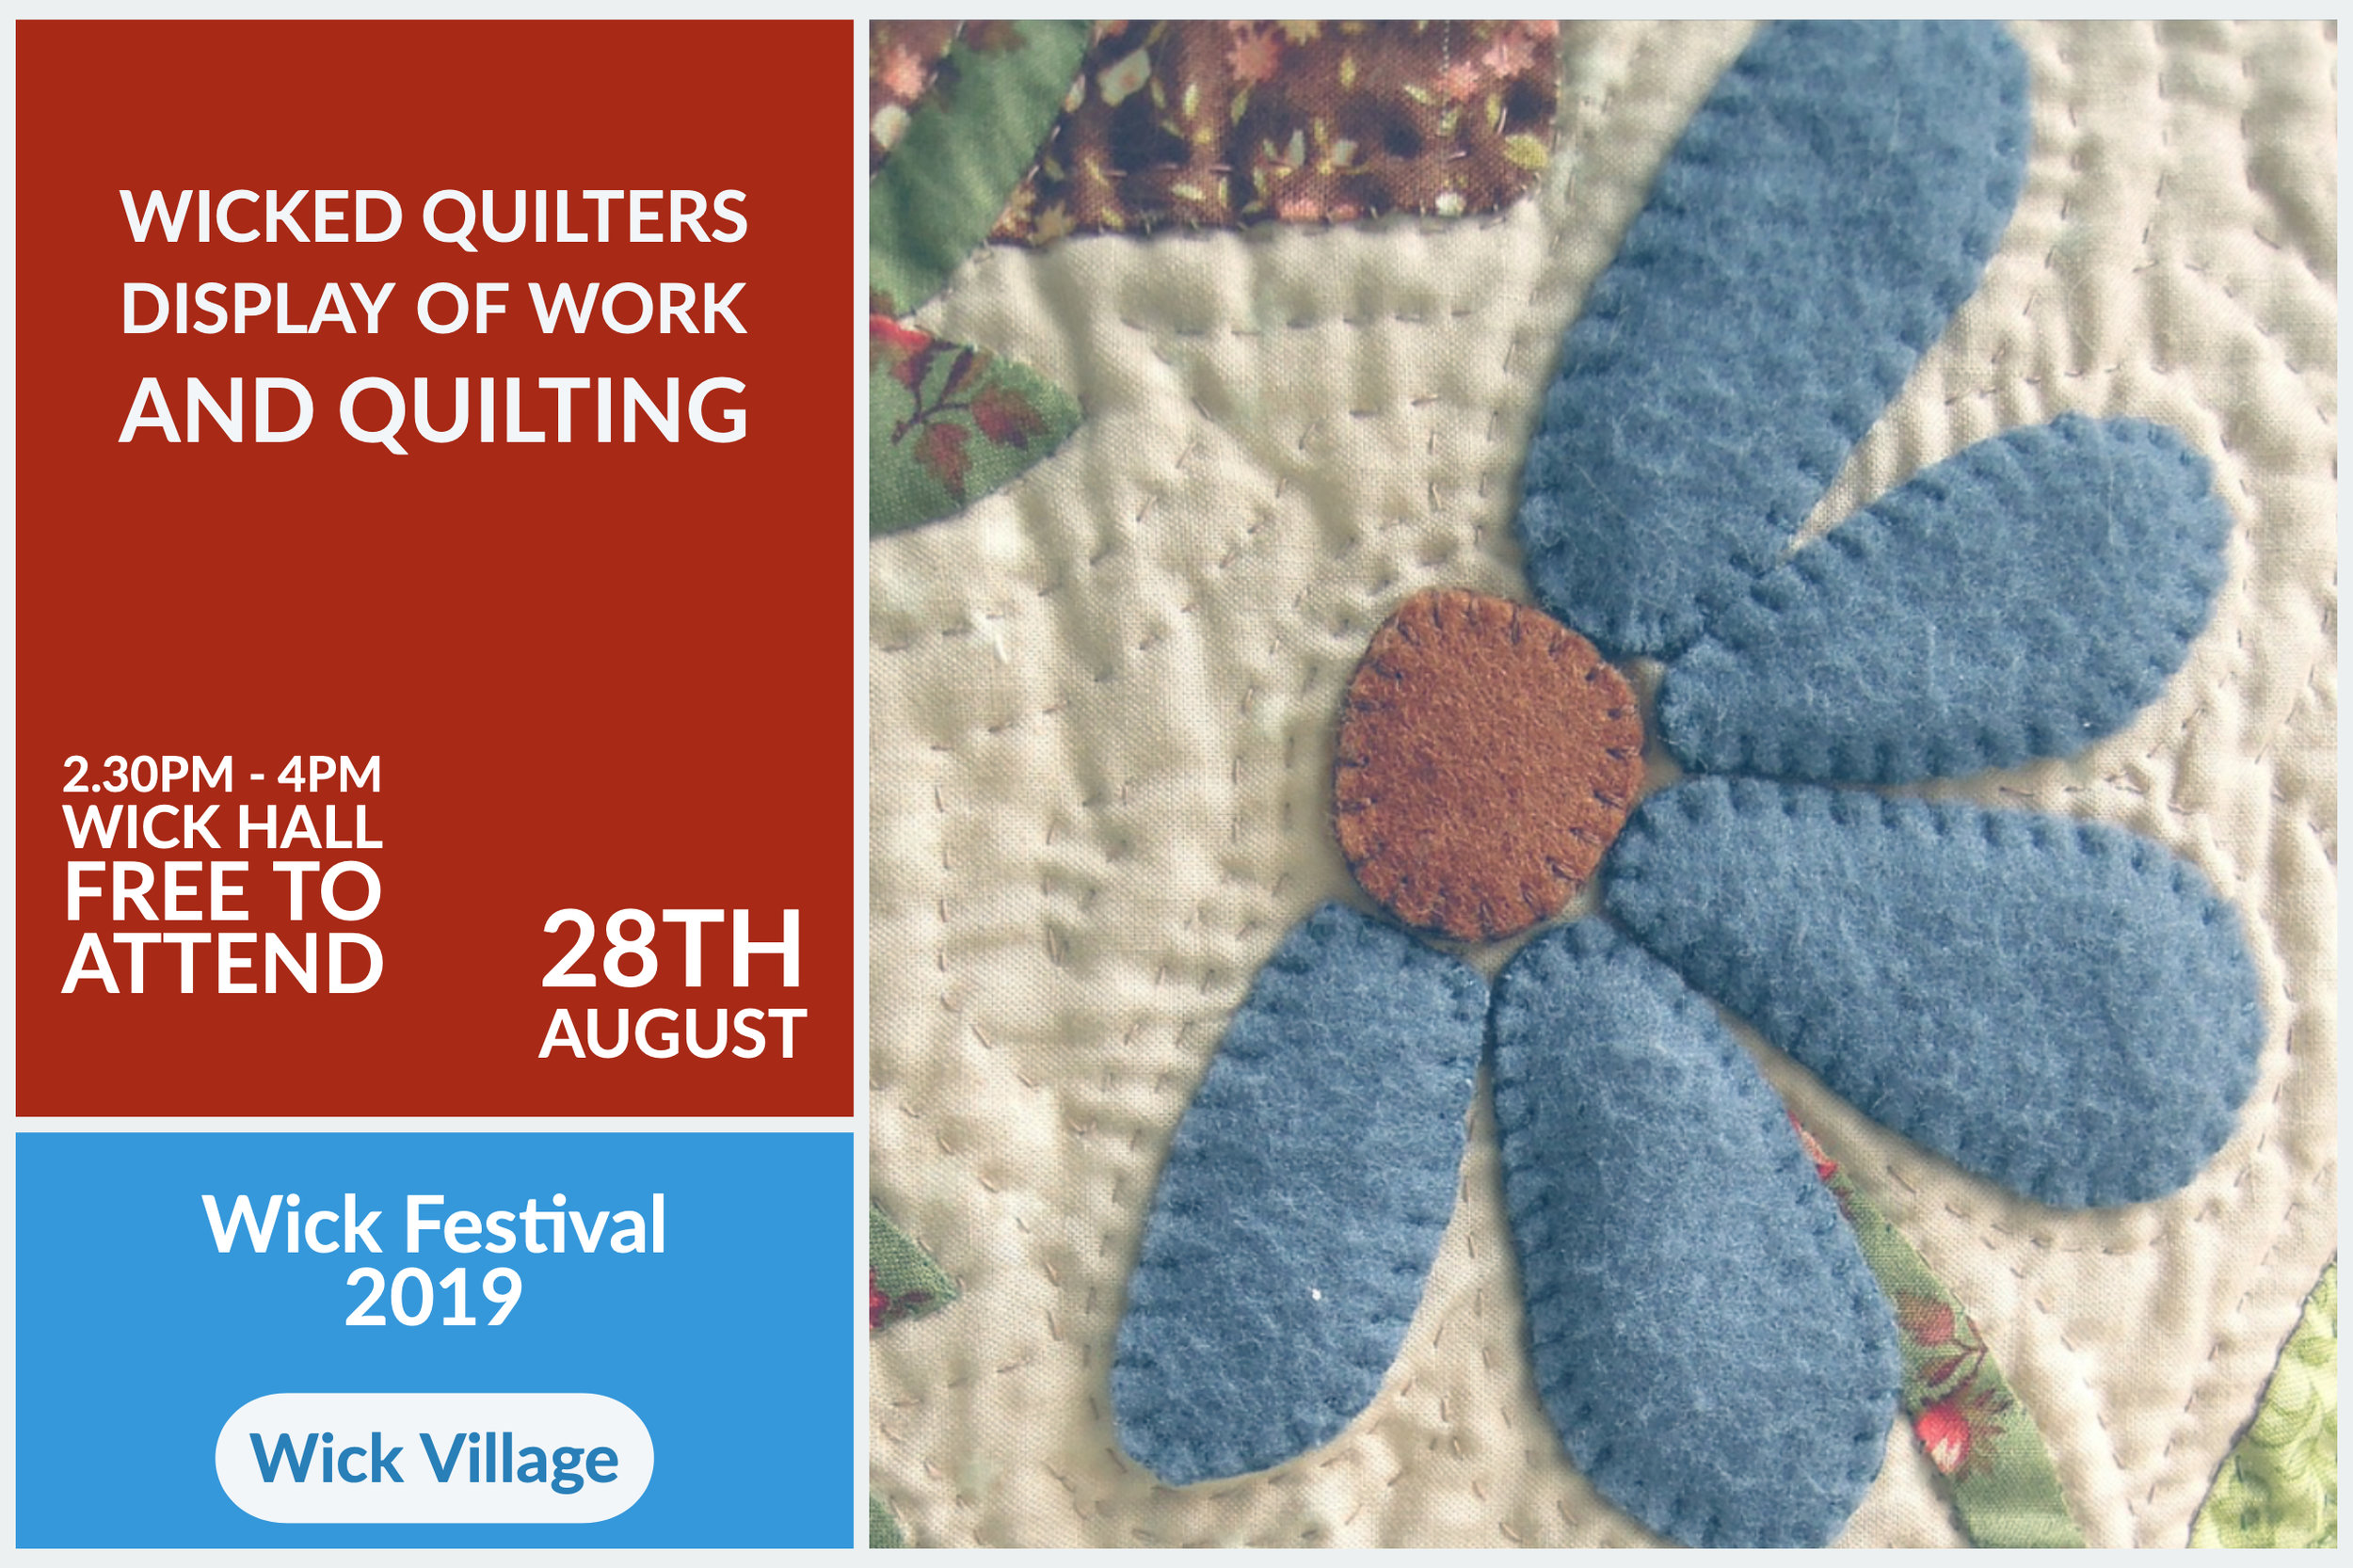 Wick Festival - Wicked Quilters